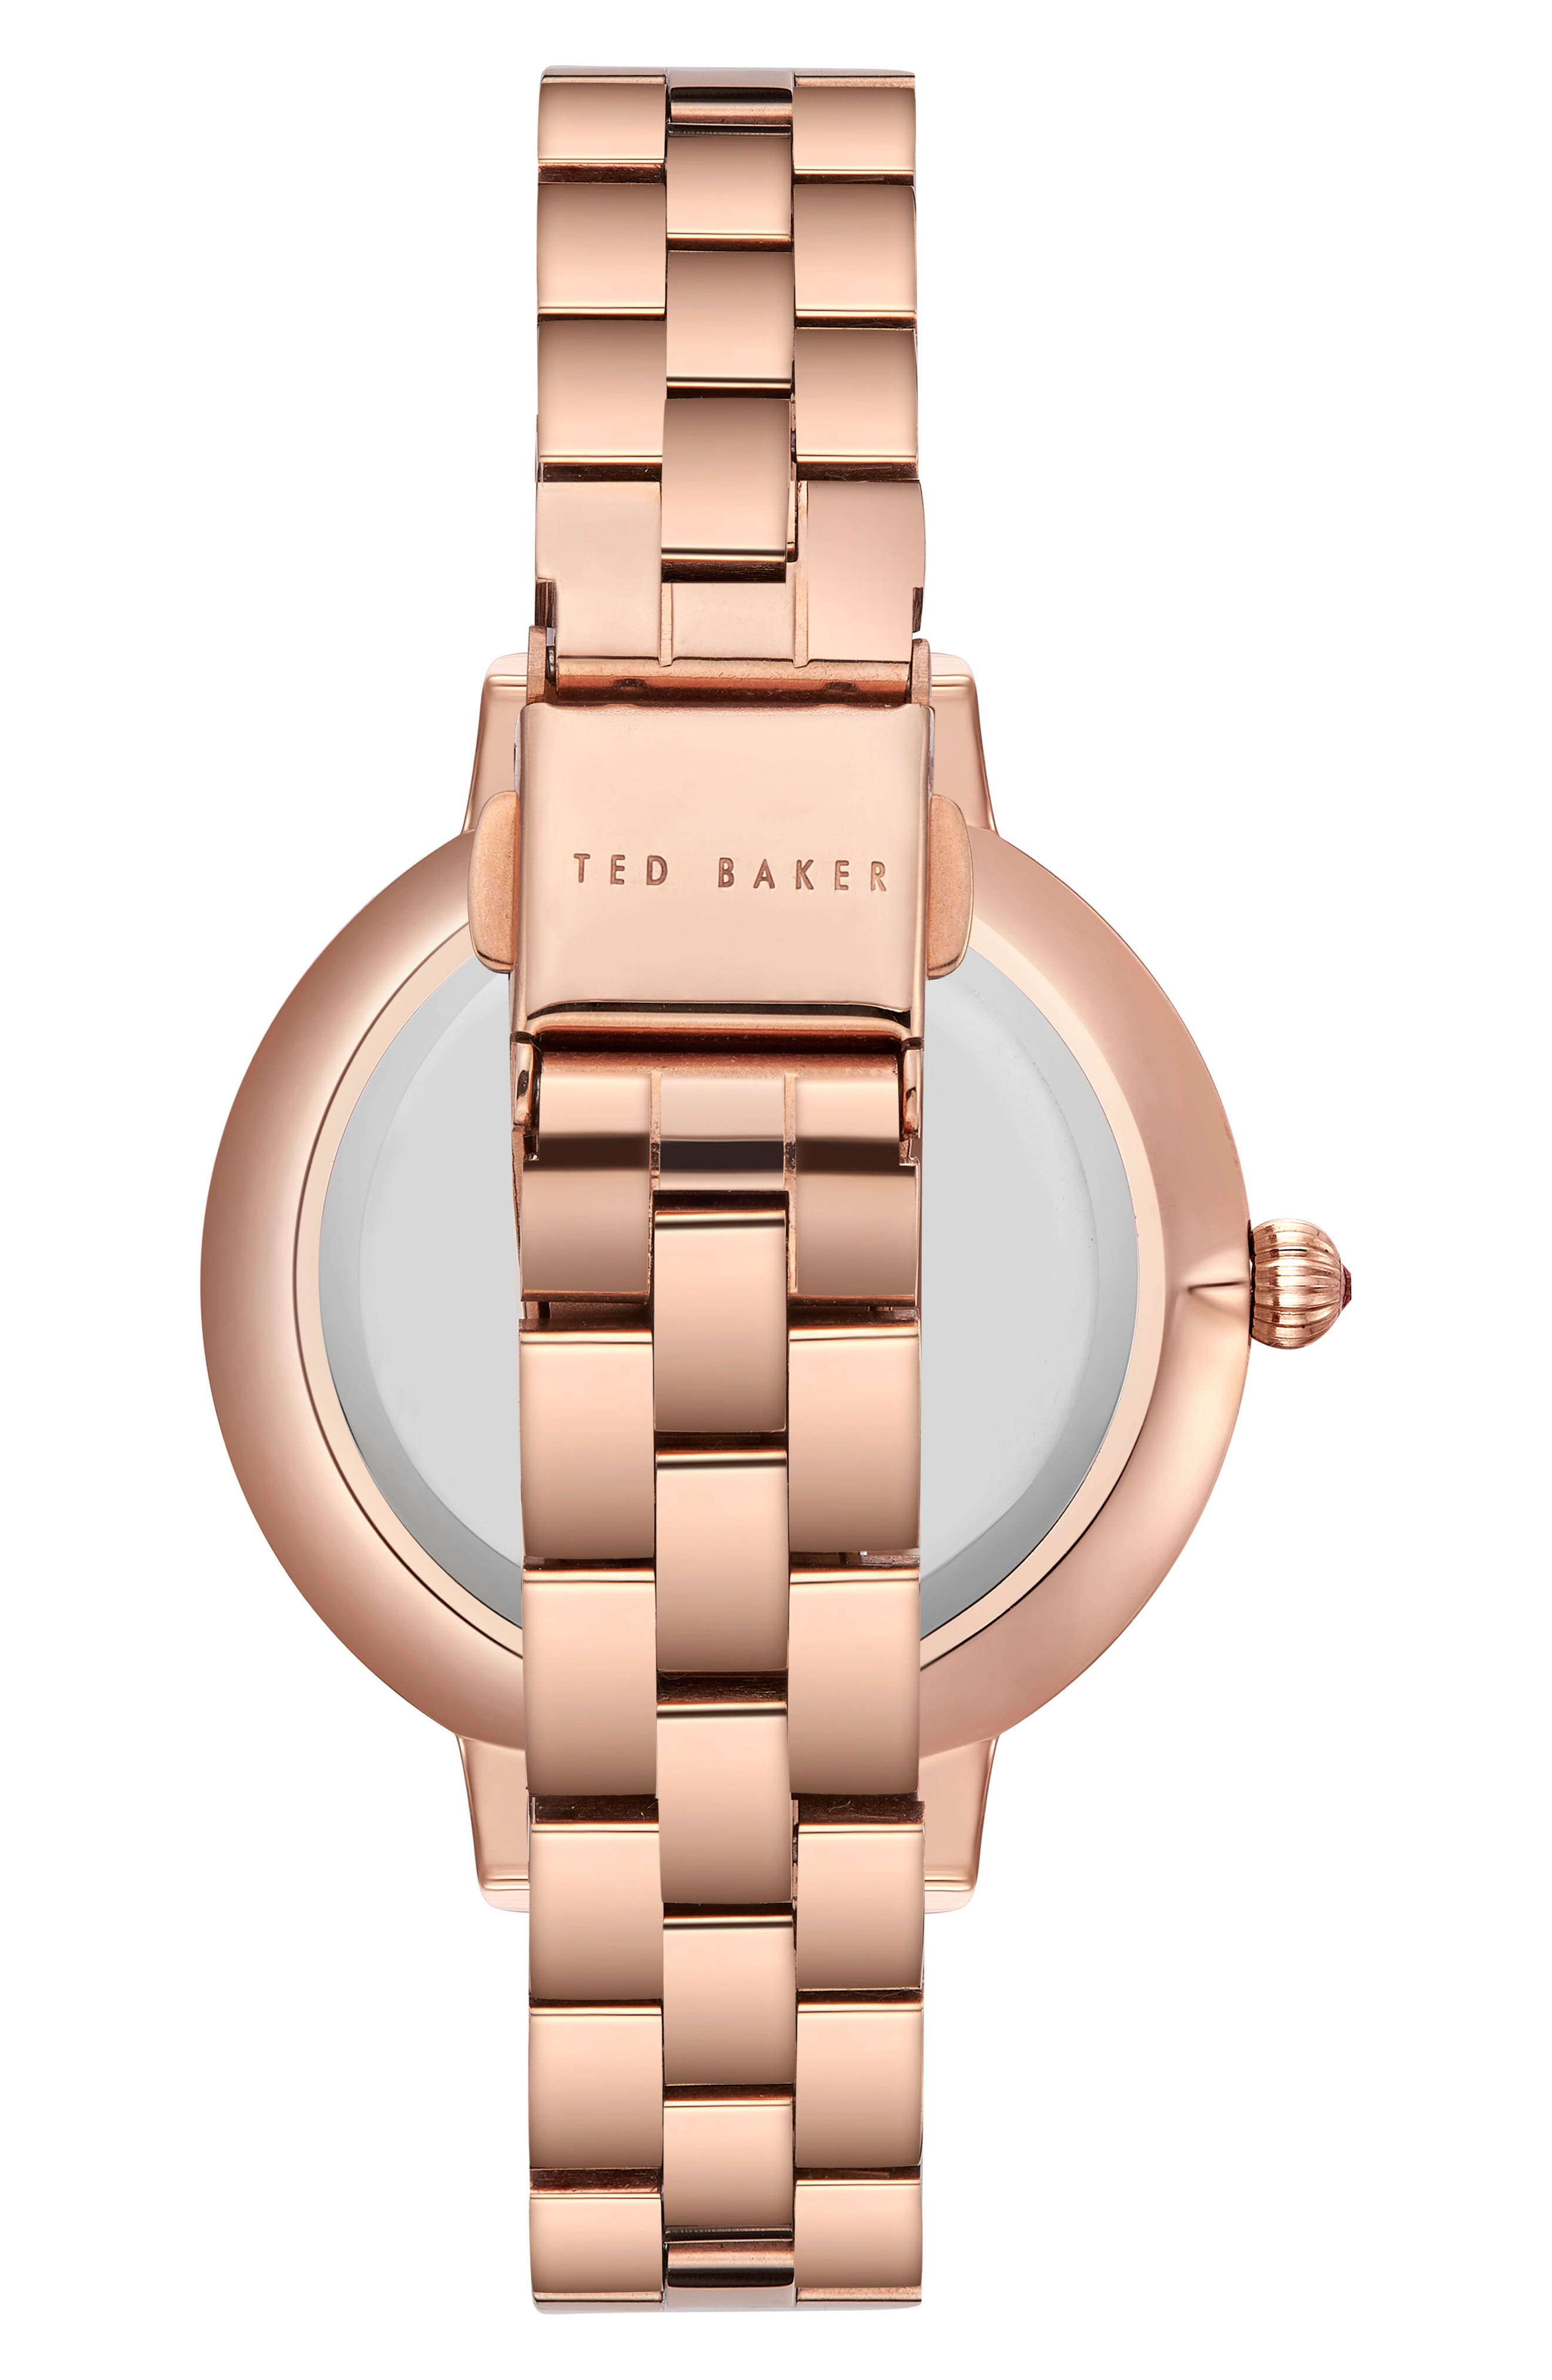 TED BAKER LONDON,                             Kate Bracelet Watch, 36mm,                             Alternate thumbnail 2, color,                             710